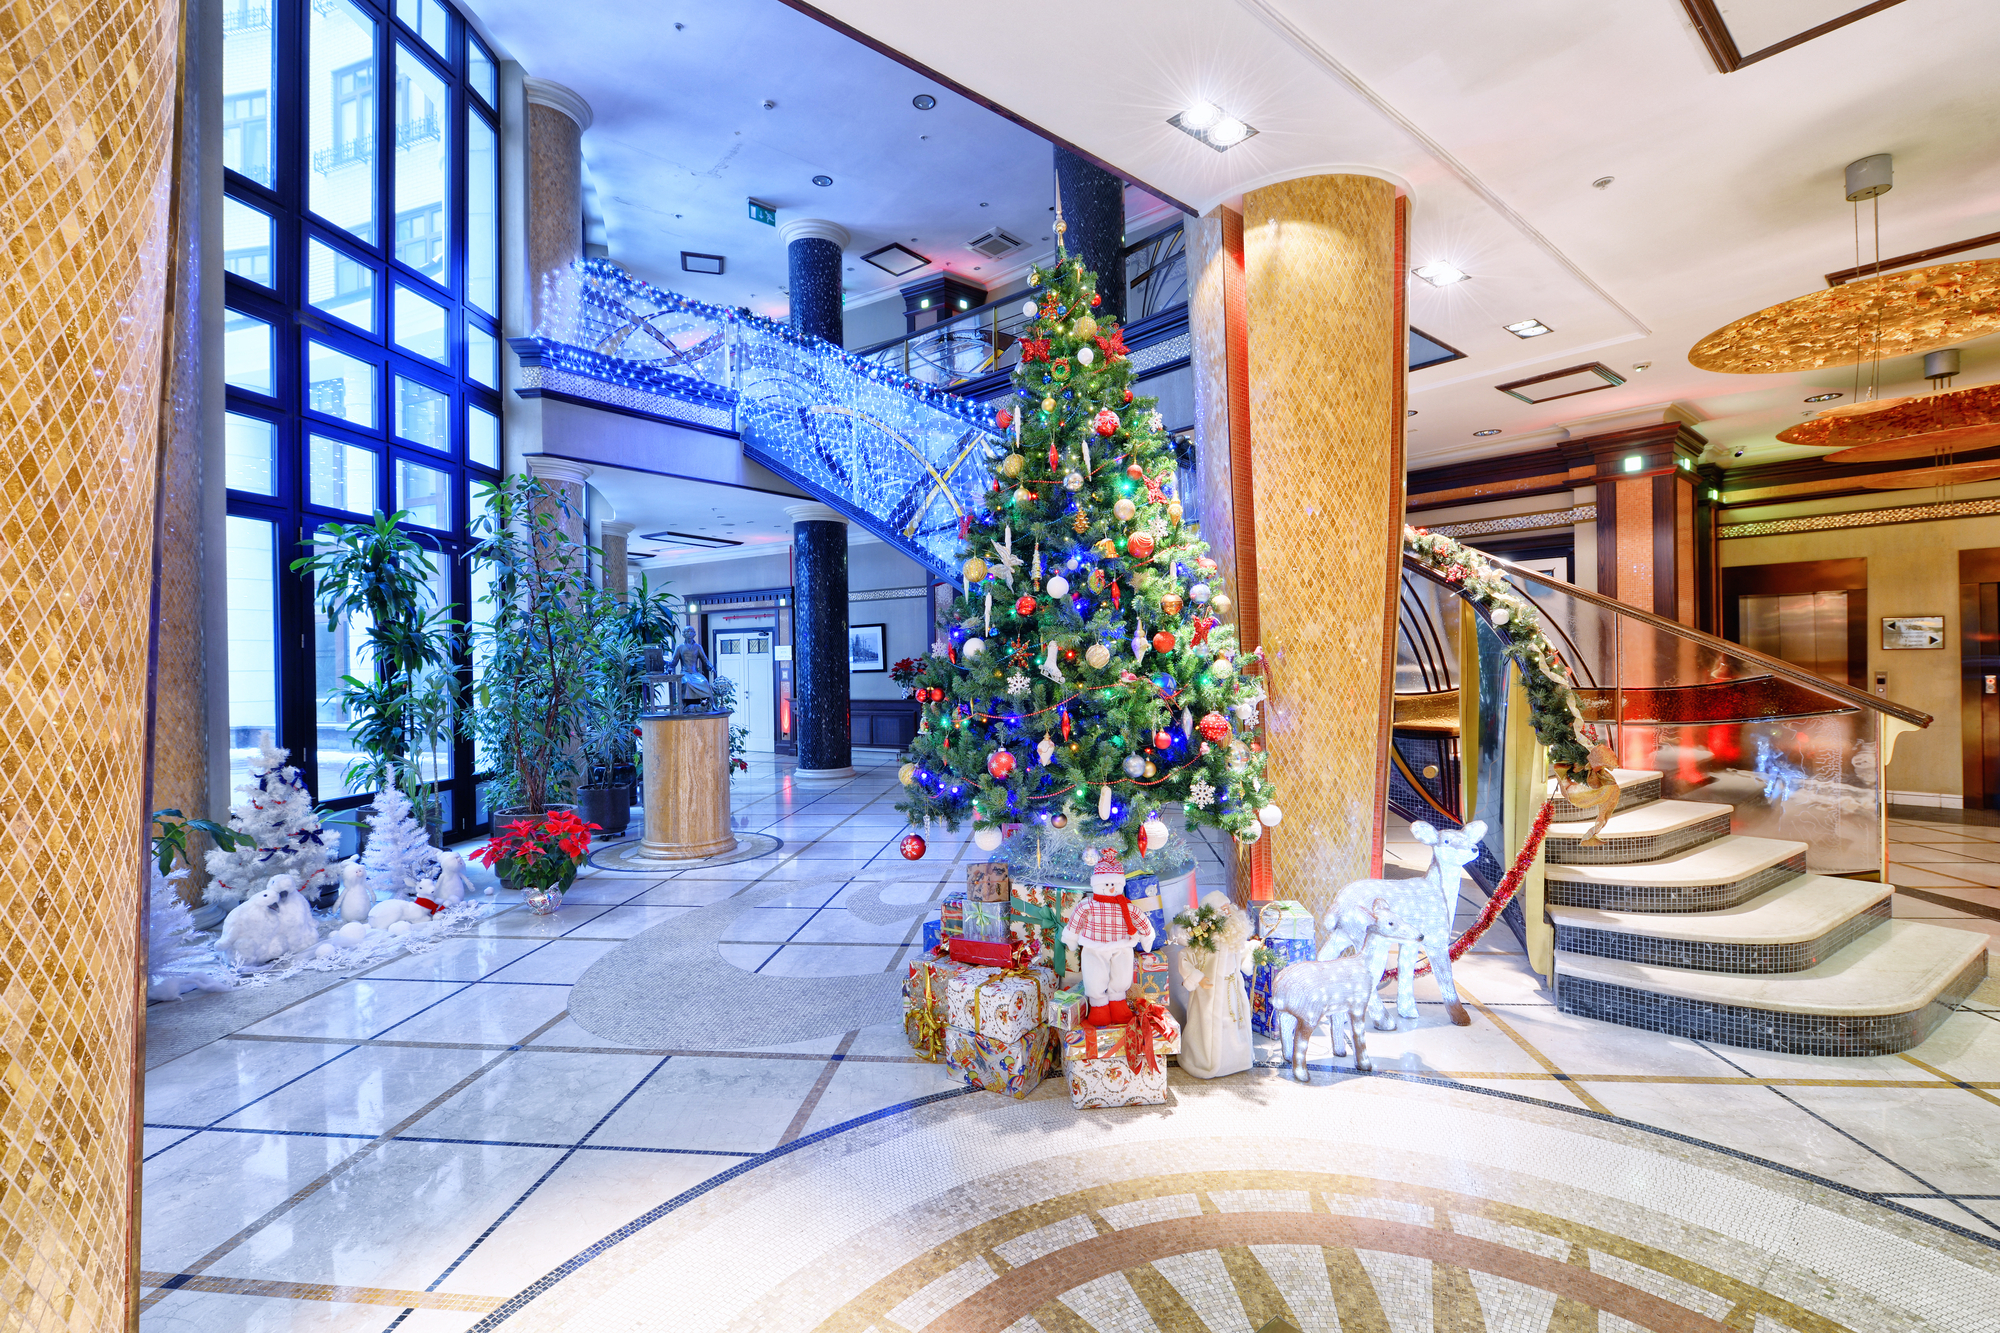 Hotel lobby decorated for the holidays